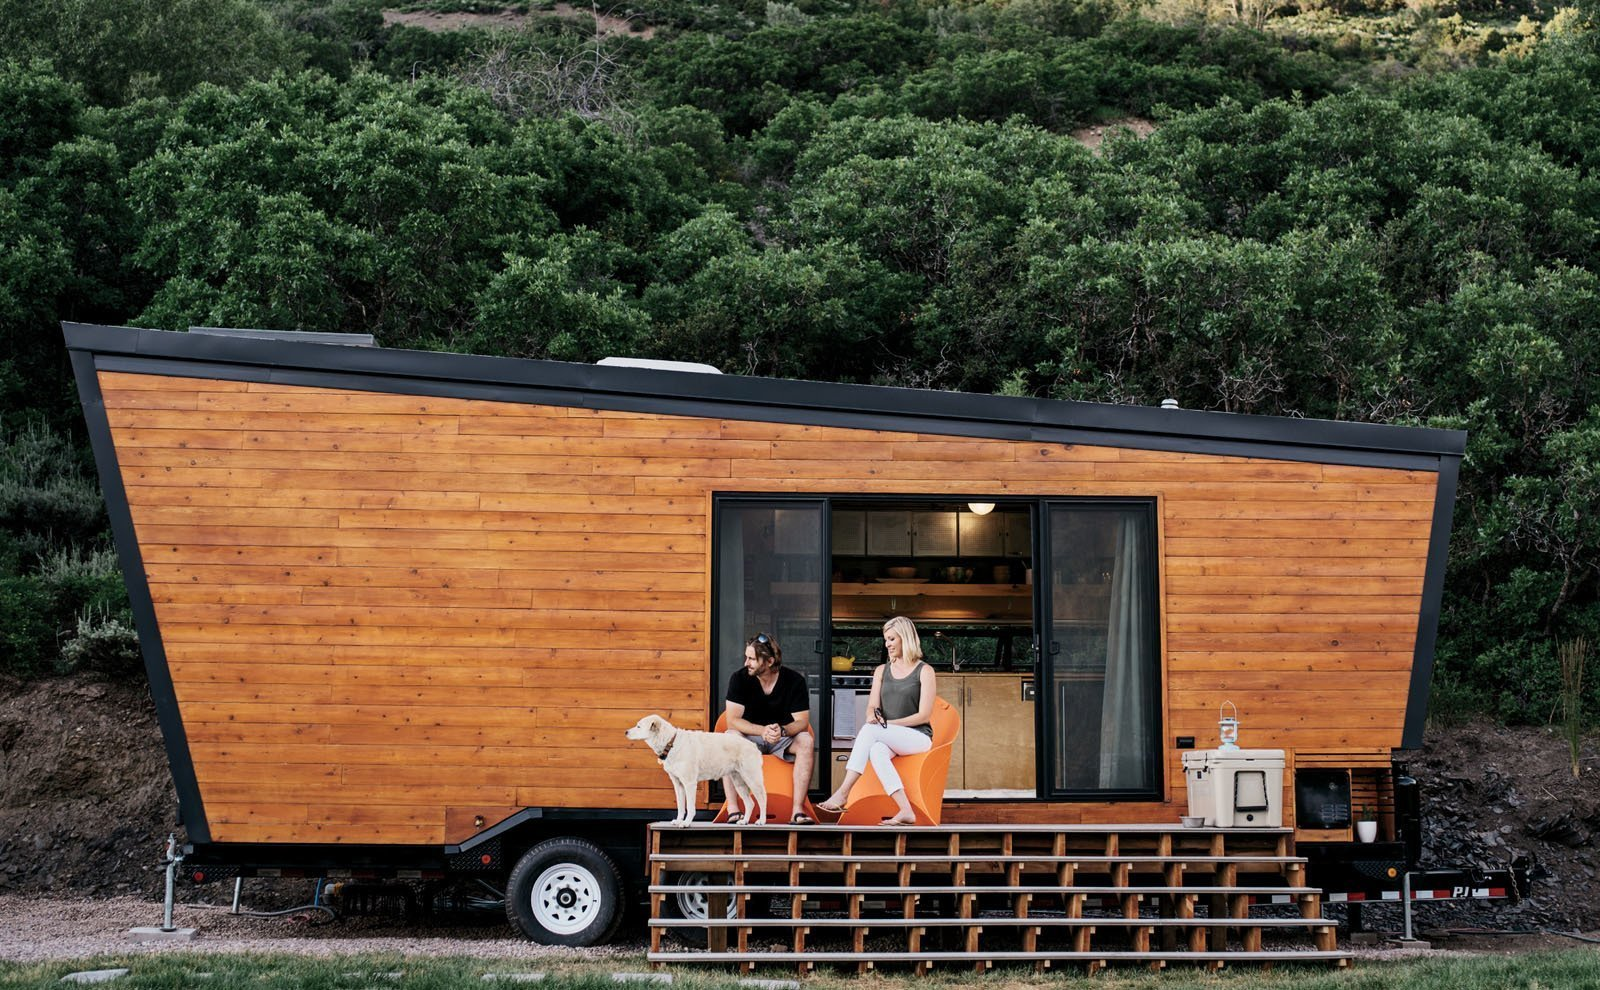 """Exterior, Wood Siding Material, Tiny Home Building Type, and Camper Building Type Nicknamed """"Woody"""", this 236-square-foot trailer which has taken a young, upwardly-mobile couple from Austin, Texas, to the Rocky Mountains hamlet of Marble, Colorado. The trailer, which cost just around $50,000 to build has modern birch-veneer plywood fit outs and skylights, and accommodates a half-size refrigerator, eight-inch-deep storage compartments built into the floor, a loft bed and even a galvanized-steel cow trough bathtub.  Best Photos from 6 Modern Homes on Wheels"""